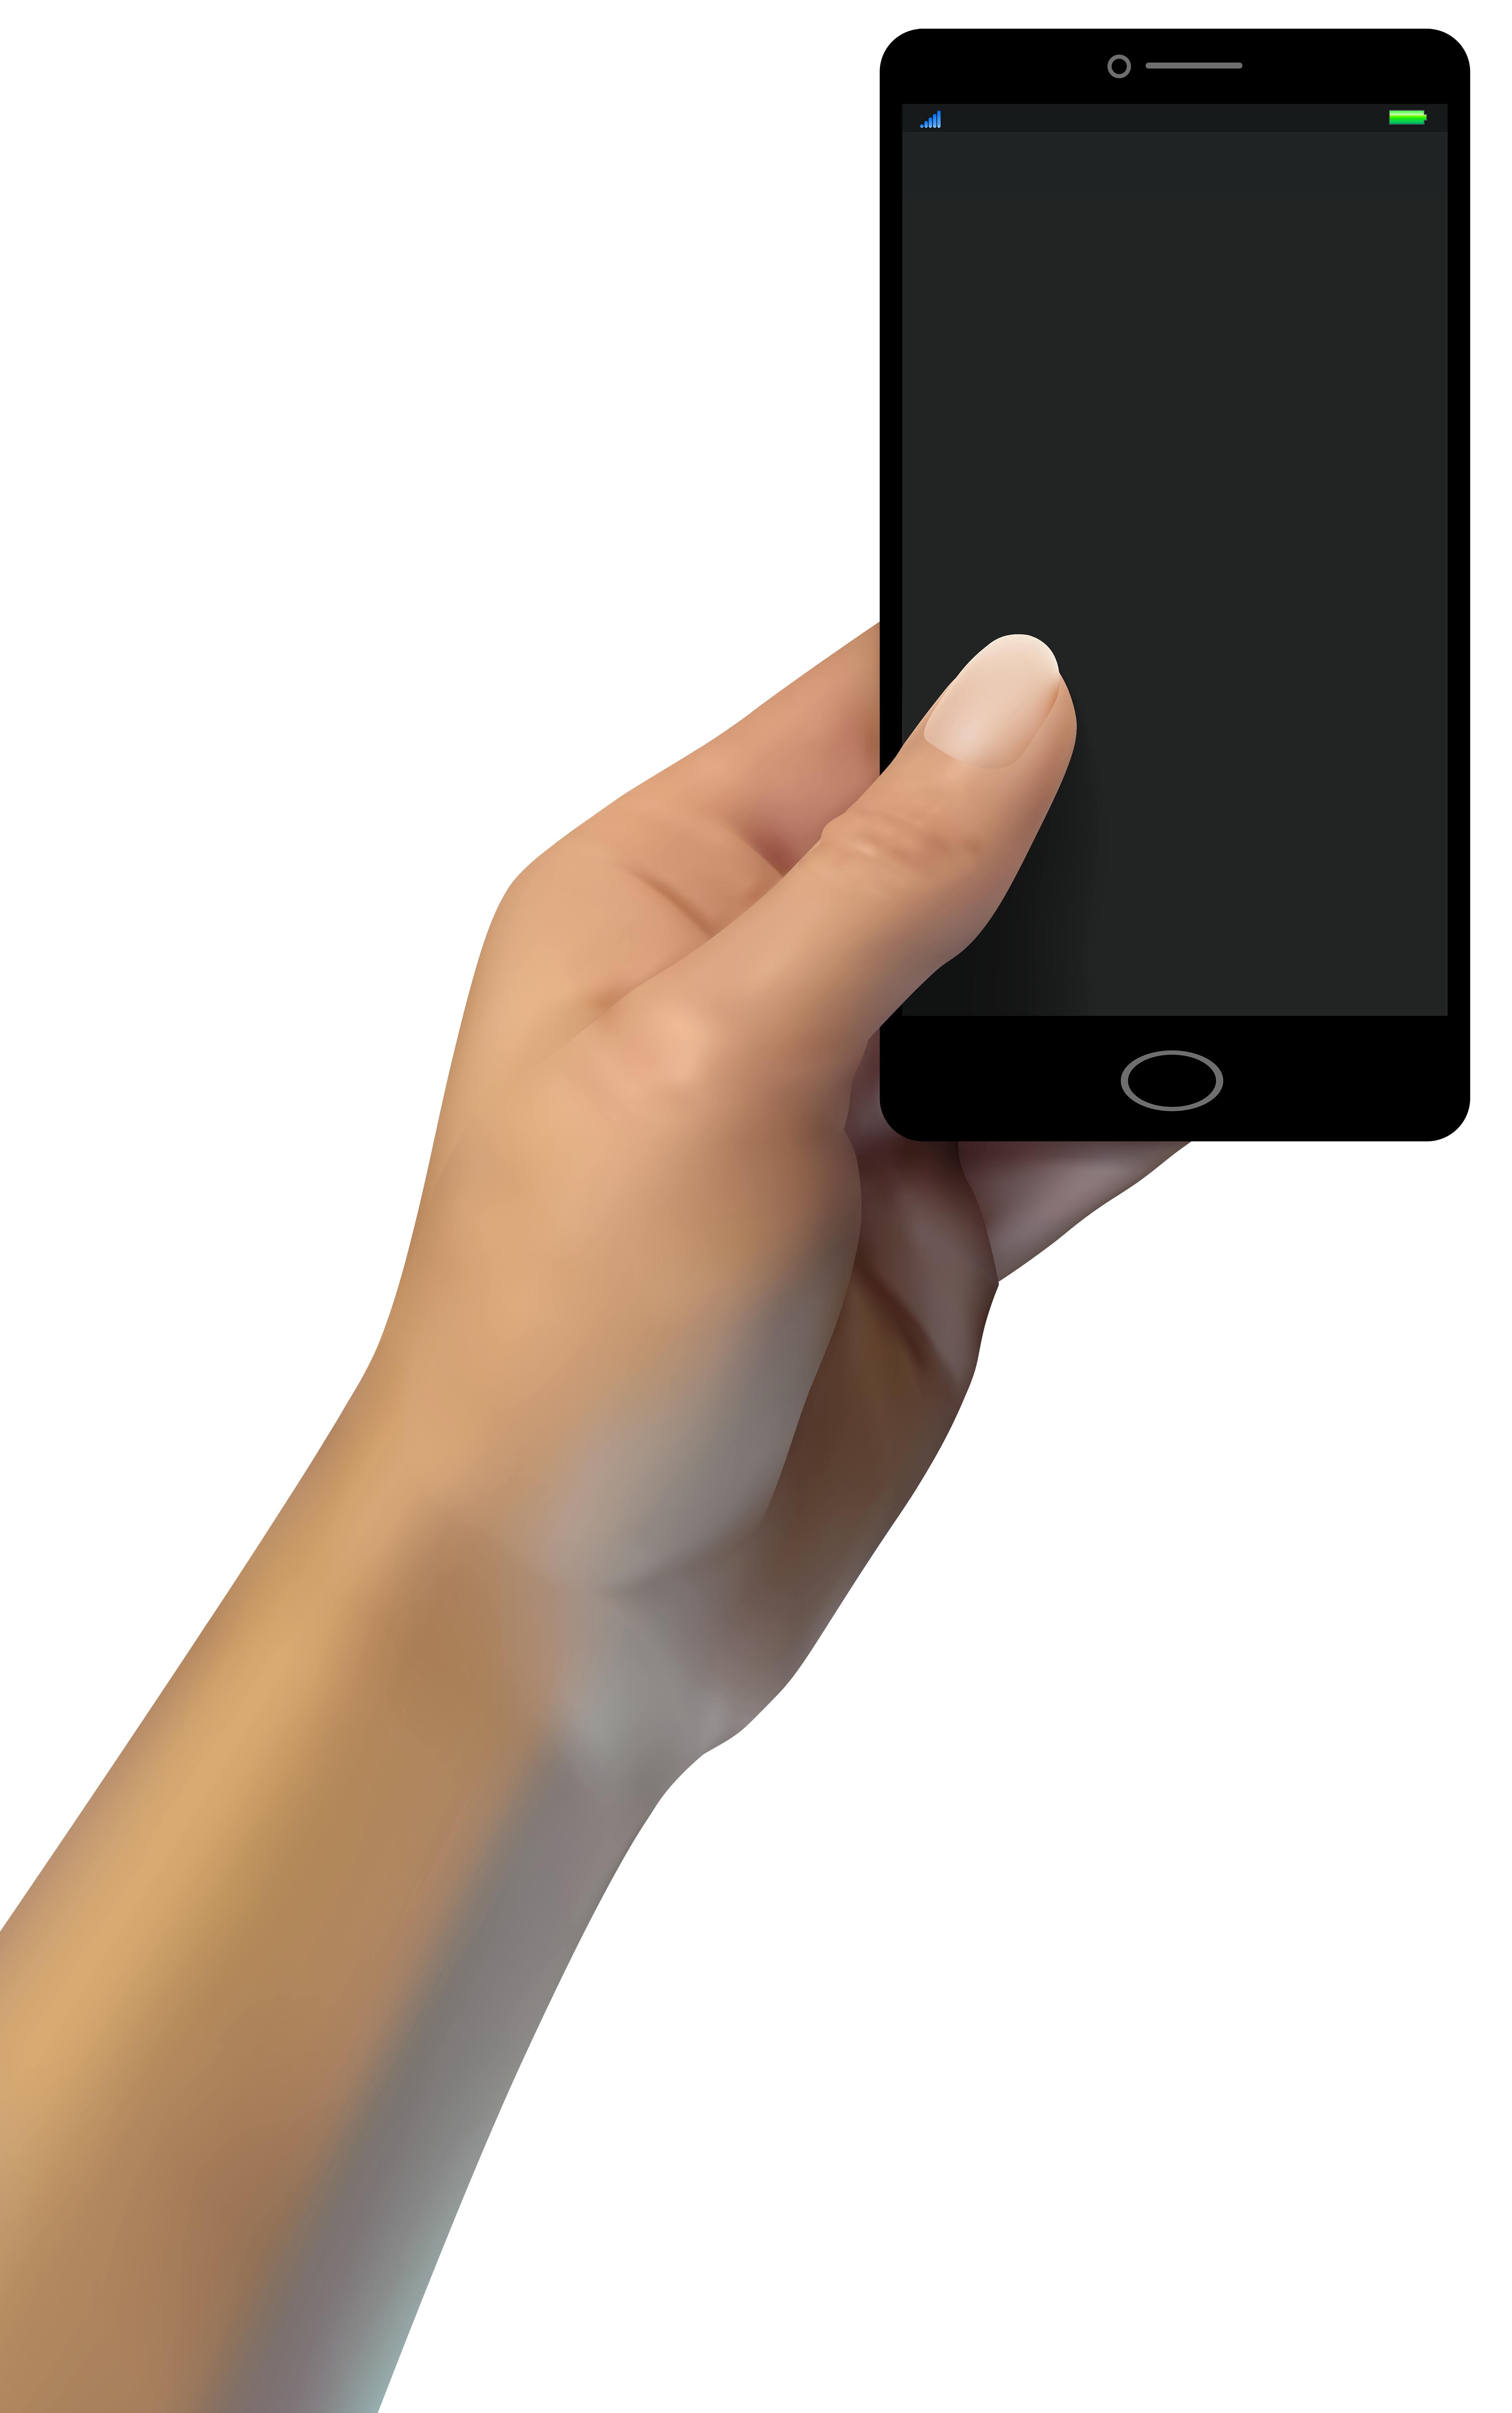 Phone in png image. Hand clipart computer